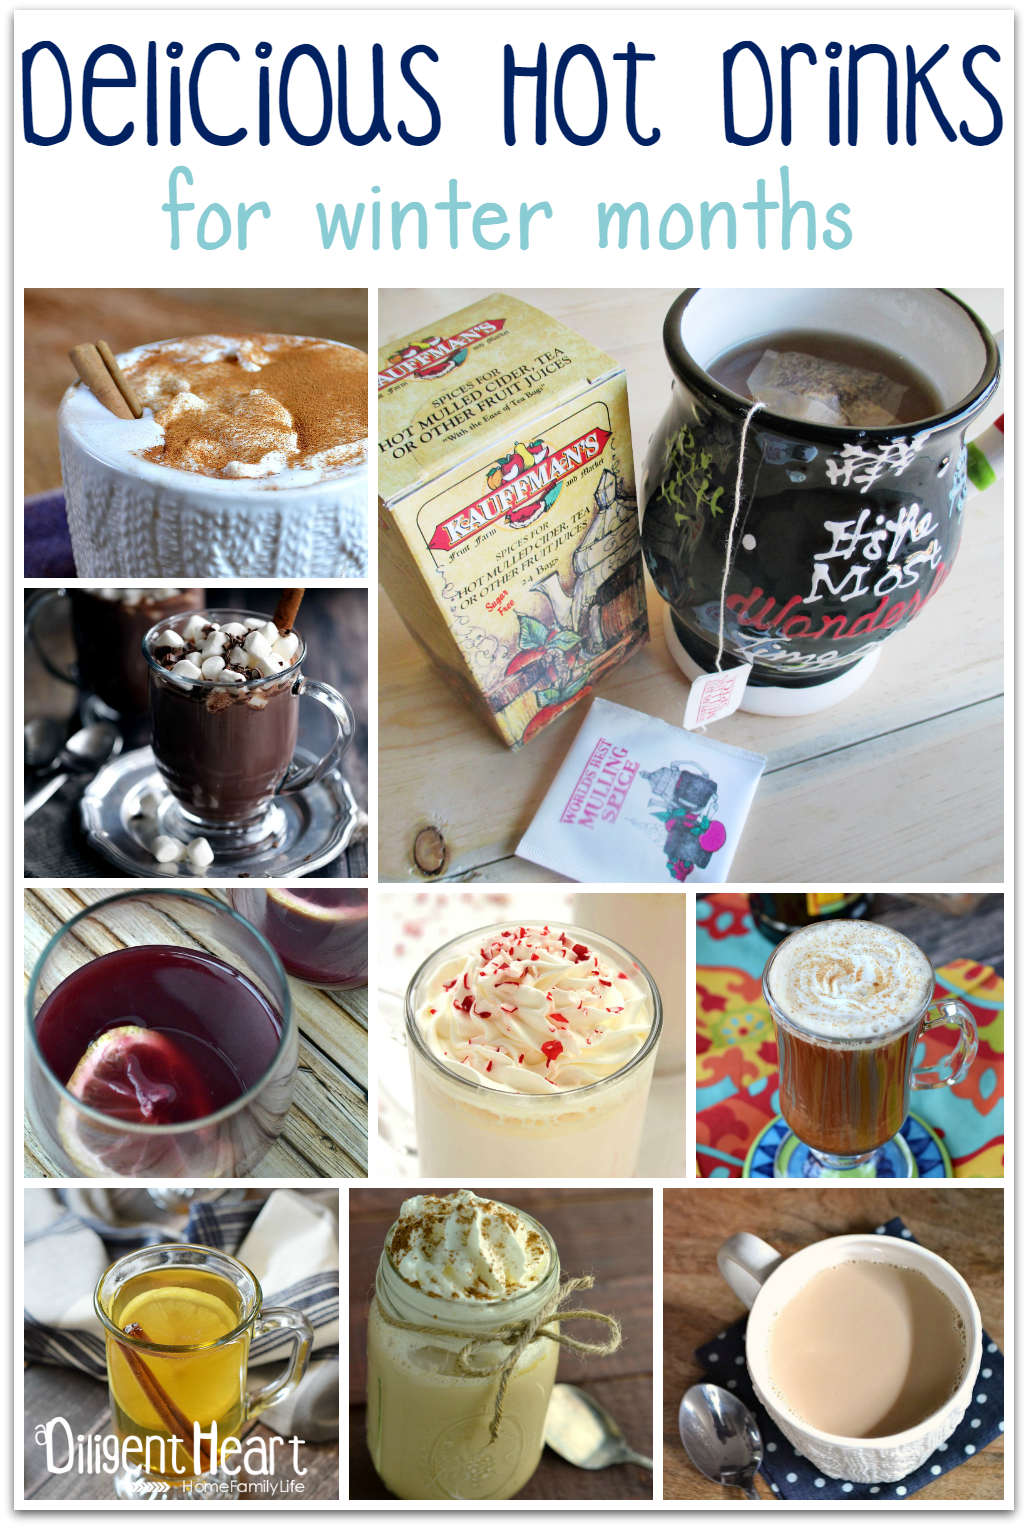 I've been craving some delicious hot drinks to sip on during these cooler months. And this time of year, I love to try new things and put a little twist on traditional hot drink ideas. I've pulled together some delicious hot drinks for the winter months in this post to get some inspiration and to give you some too! Check them out!! | adiligentheart.com